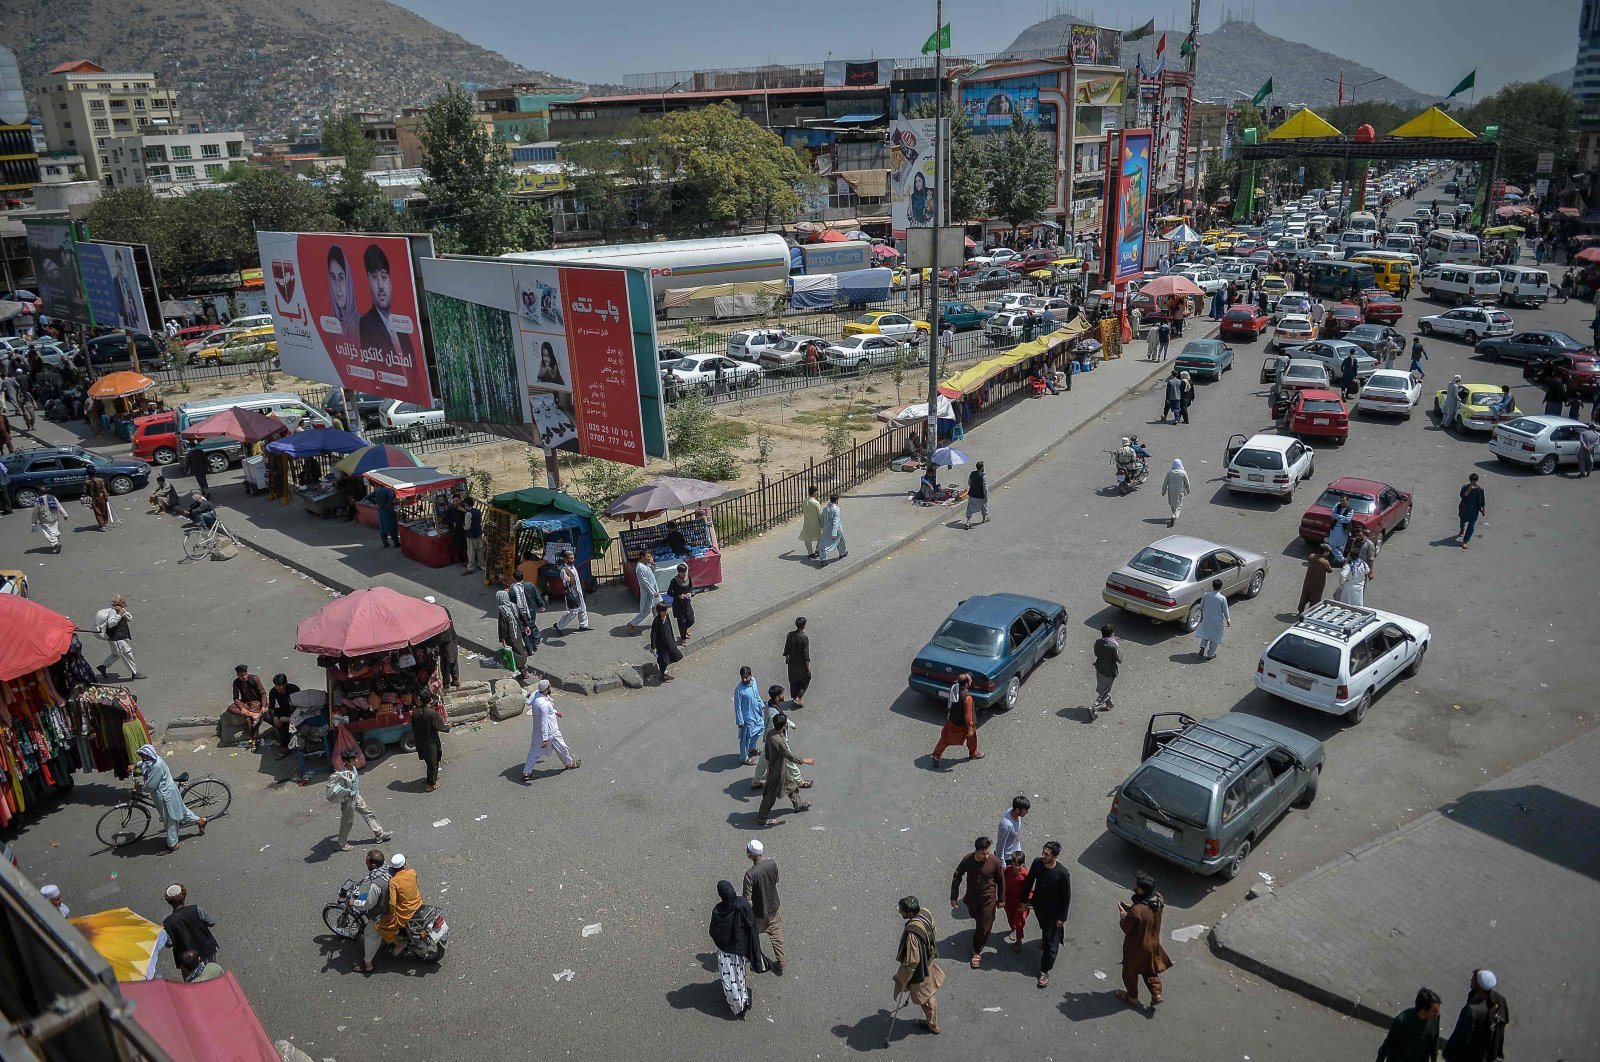 A general overview of a marketplace flocked with local Afghan people at the Kote Sangi area of Kabul after the Taliban seized control of the capital following the collapse of the Afghan government, Aug. 17, 2021. (AFP Photo)